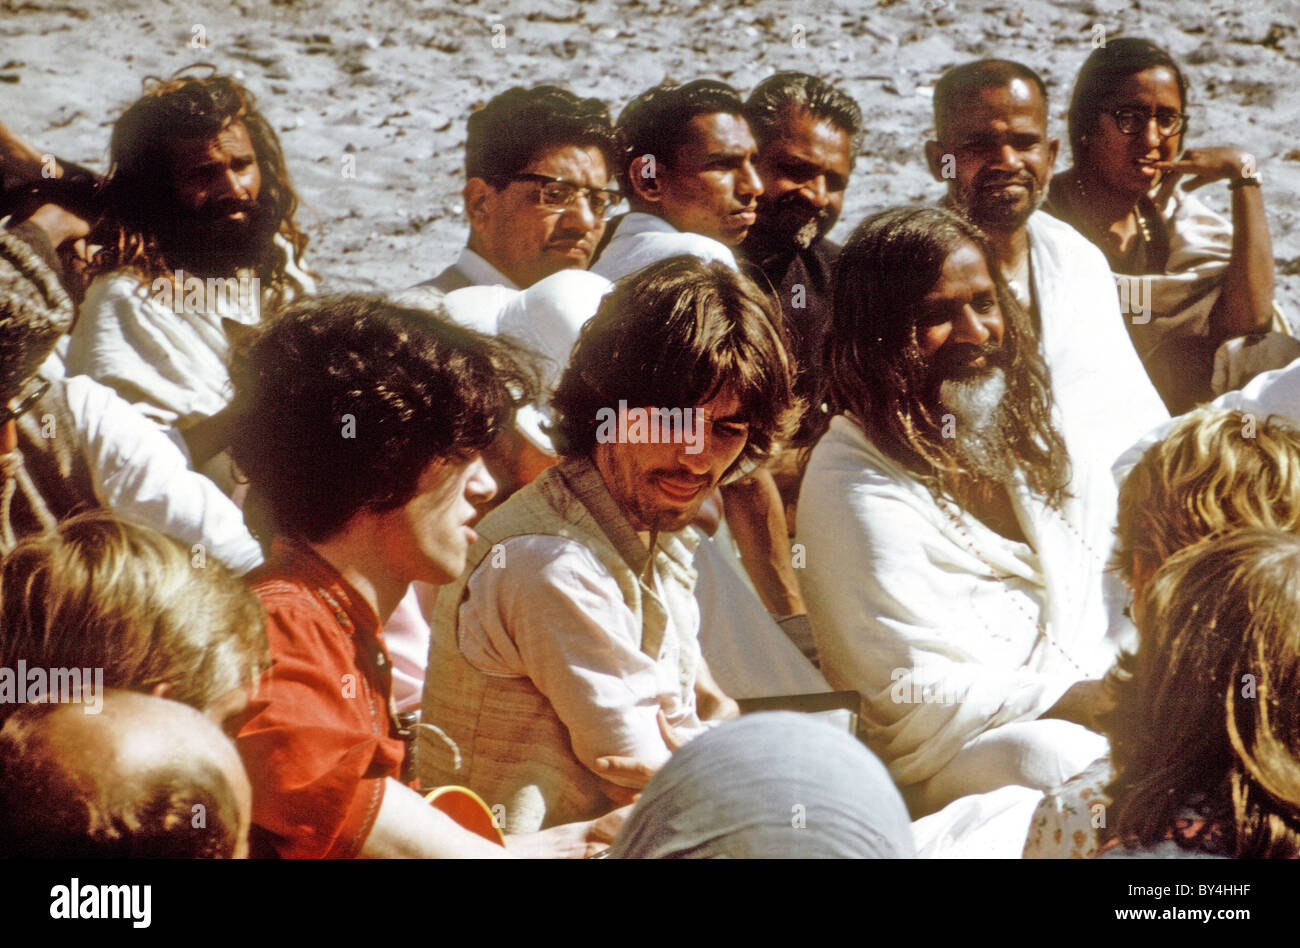 DONOVAN (in orange) and George Harrison with the Maharishi at right in India in 1968 - Stock Image